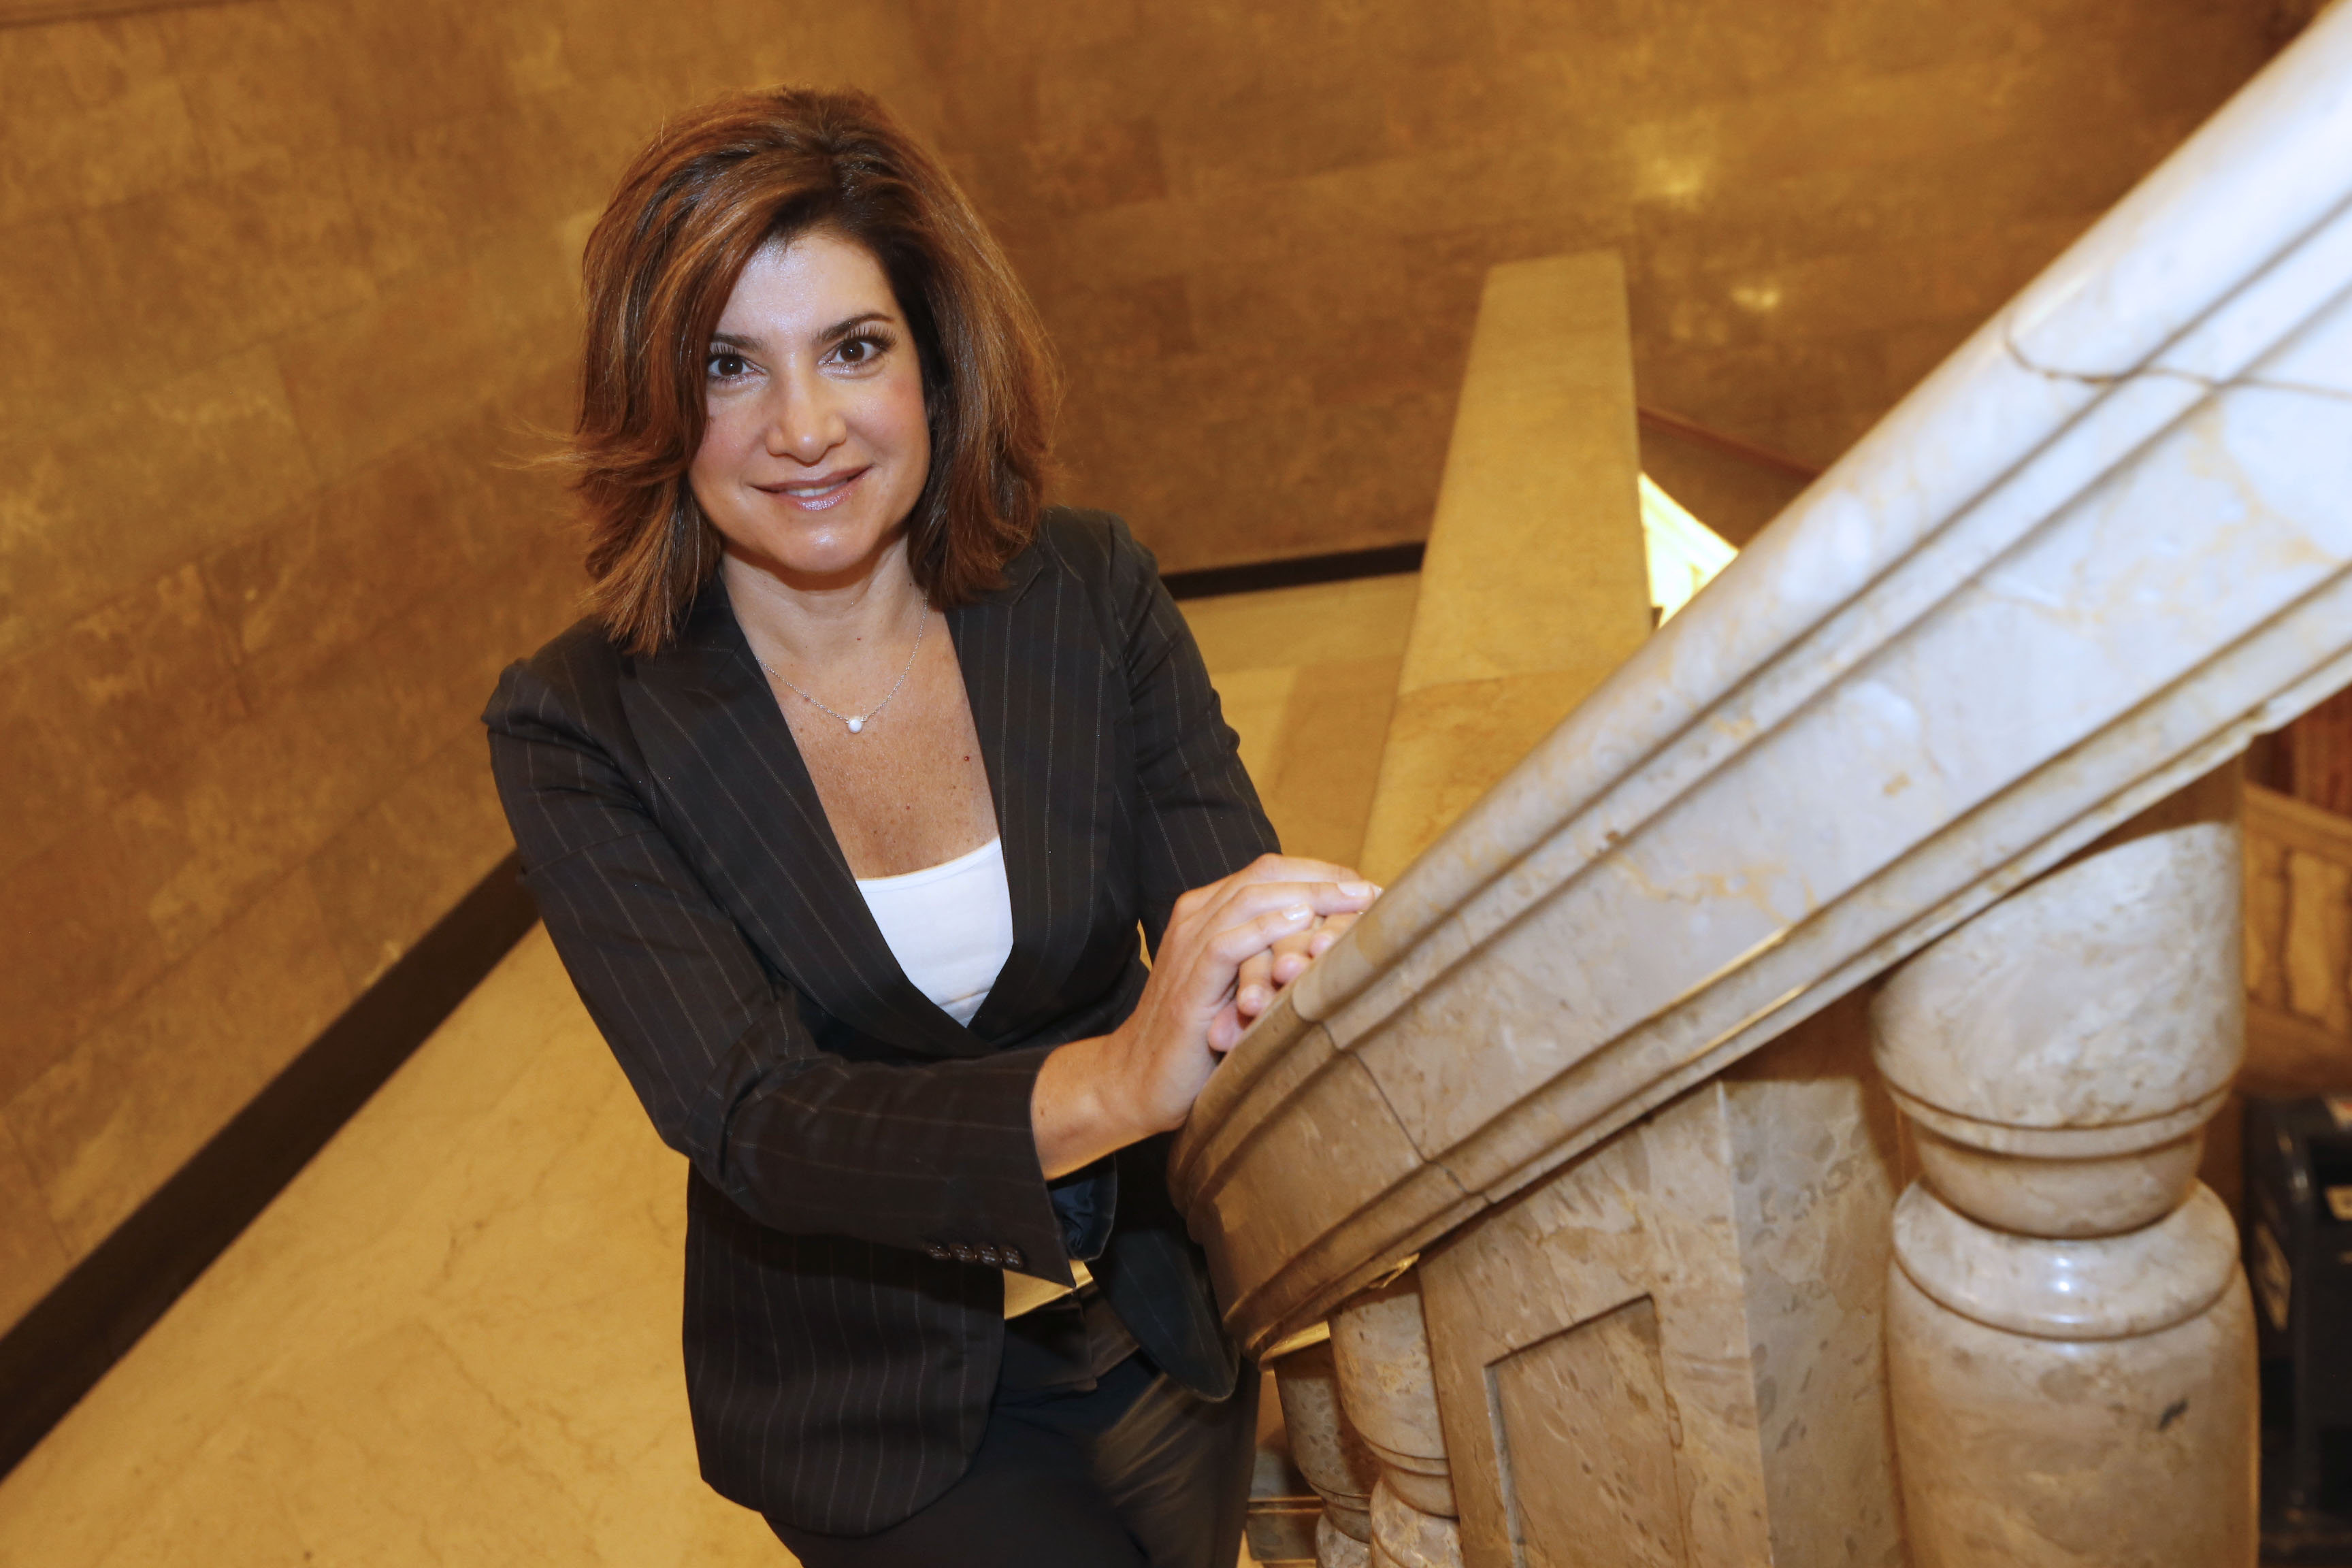 Former Channel 7 news anchor Joanna Pasceri has decided to continue serving as spokeswoman for the Erie County District Attorney. (Robert Kirkham/News file photo)